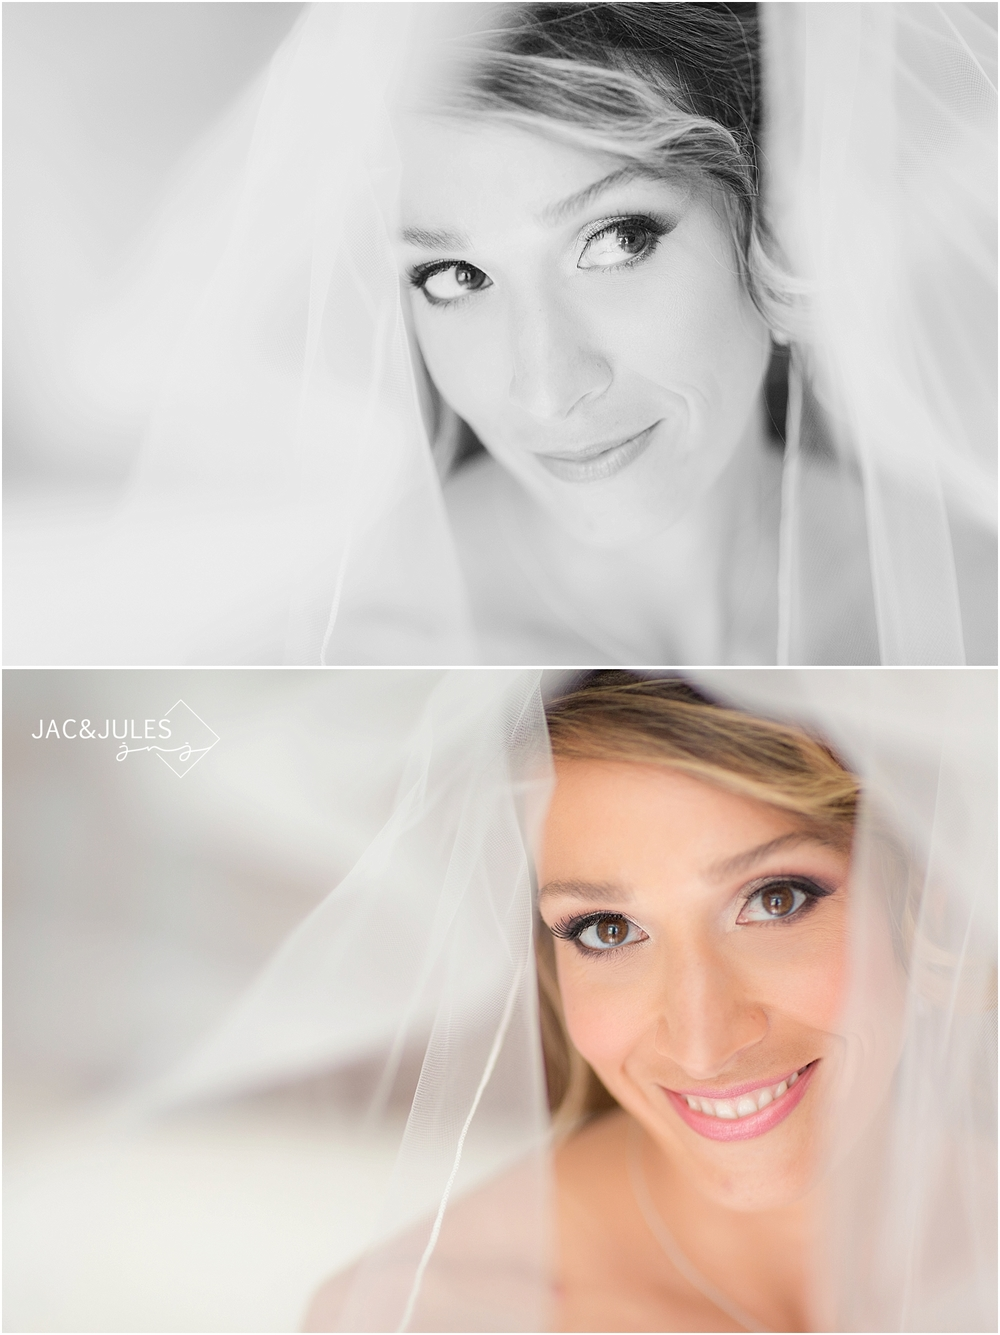 jacnjules photographs beautiful bride in lebanon nj